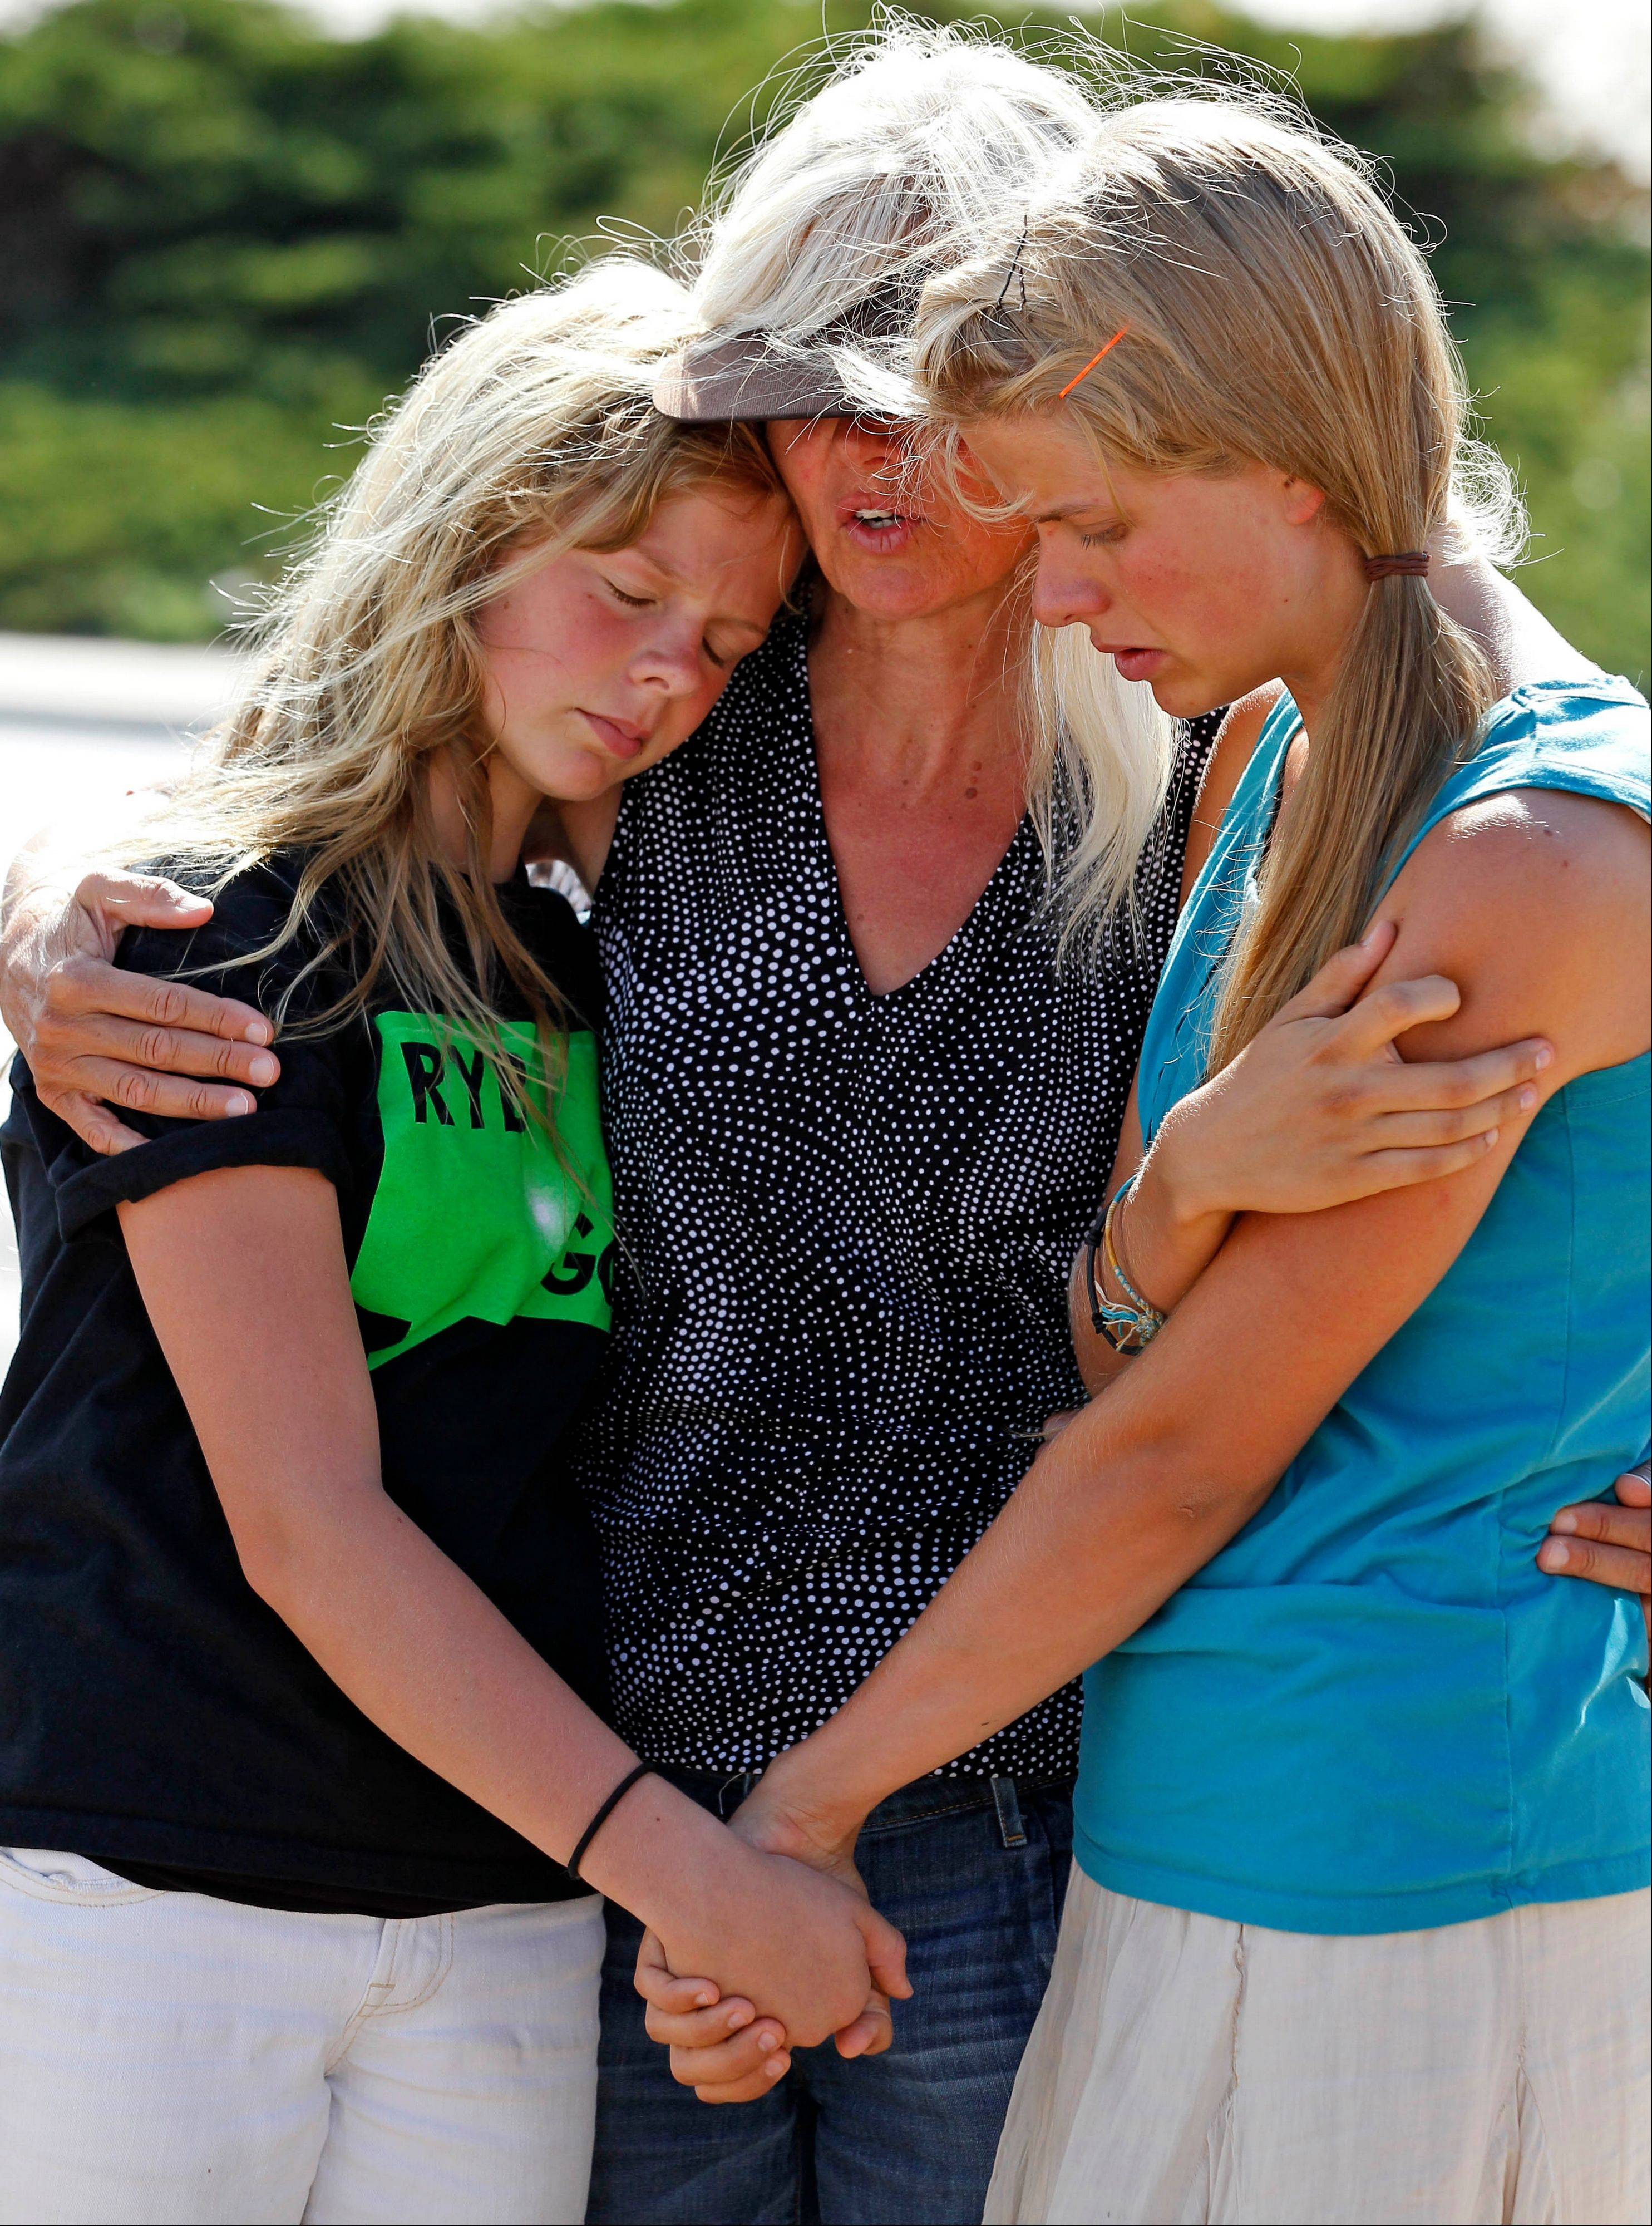 Shadia Sikkema, 12, left, her mother, Diane Sikkema, and sister, Spenser Sikkema, 19, visit the memorial across from the movie theater Wednesday in Aurora, Colo.